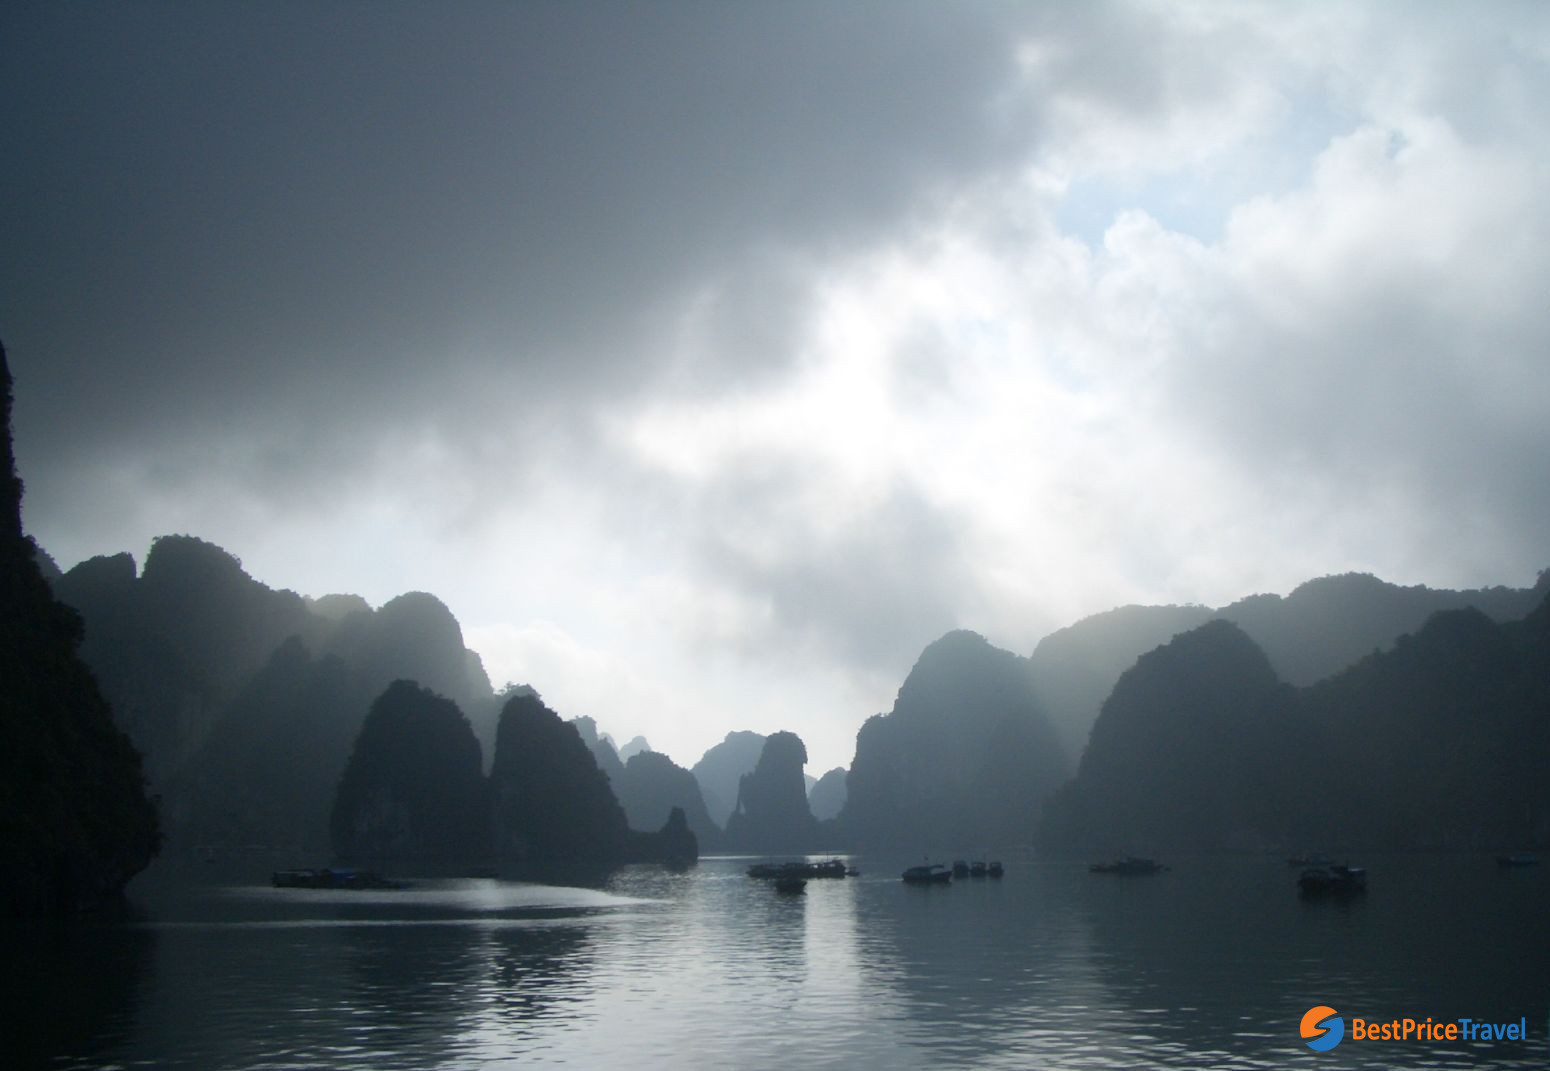 Storm in Halong Bay - reasons for the cancellation of Halong Bay cruise